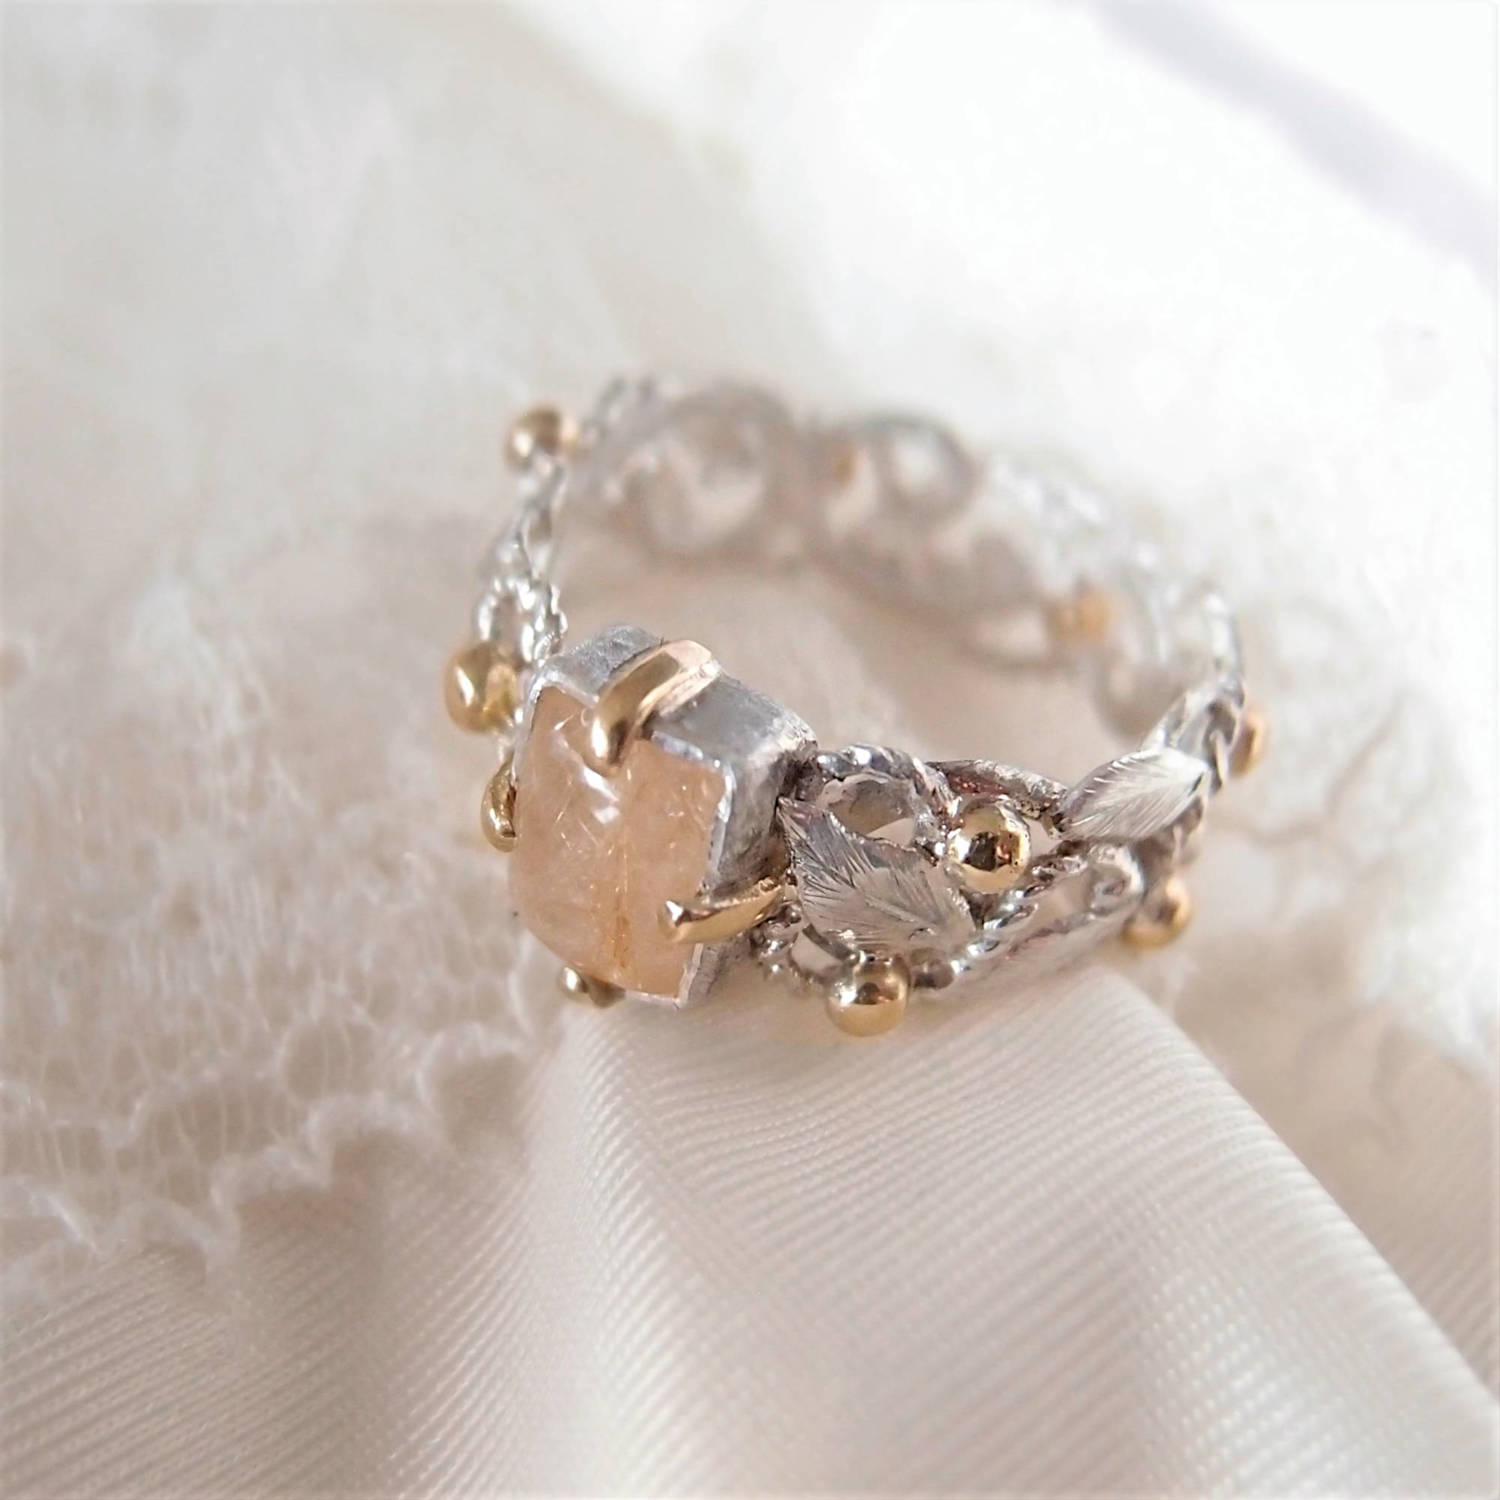 Unique rosary ring with golden beads and silver leaves by Lookrecya